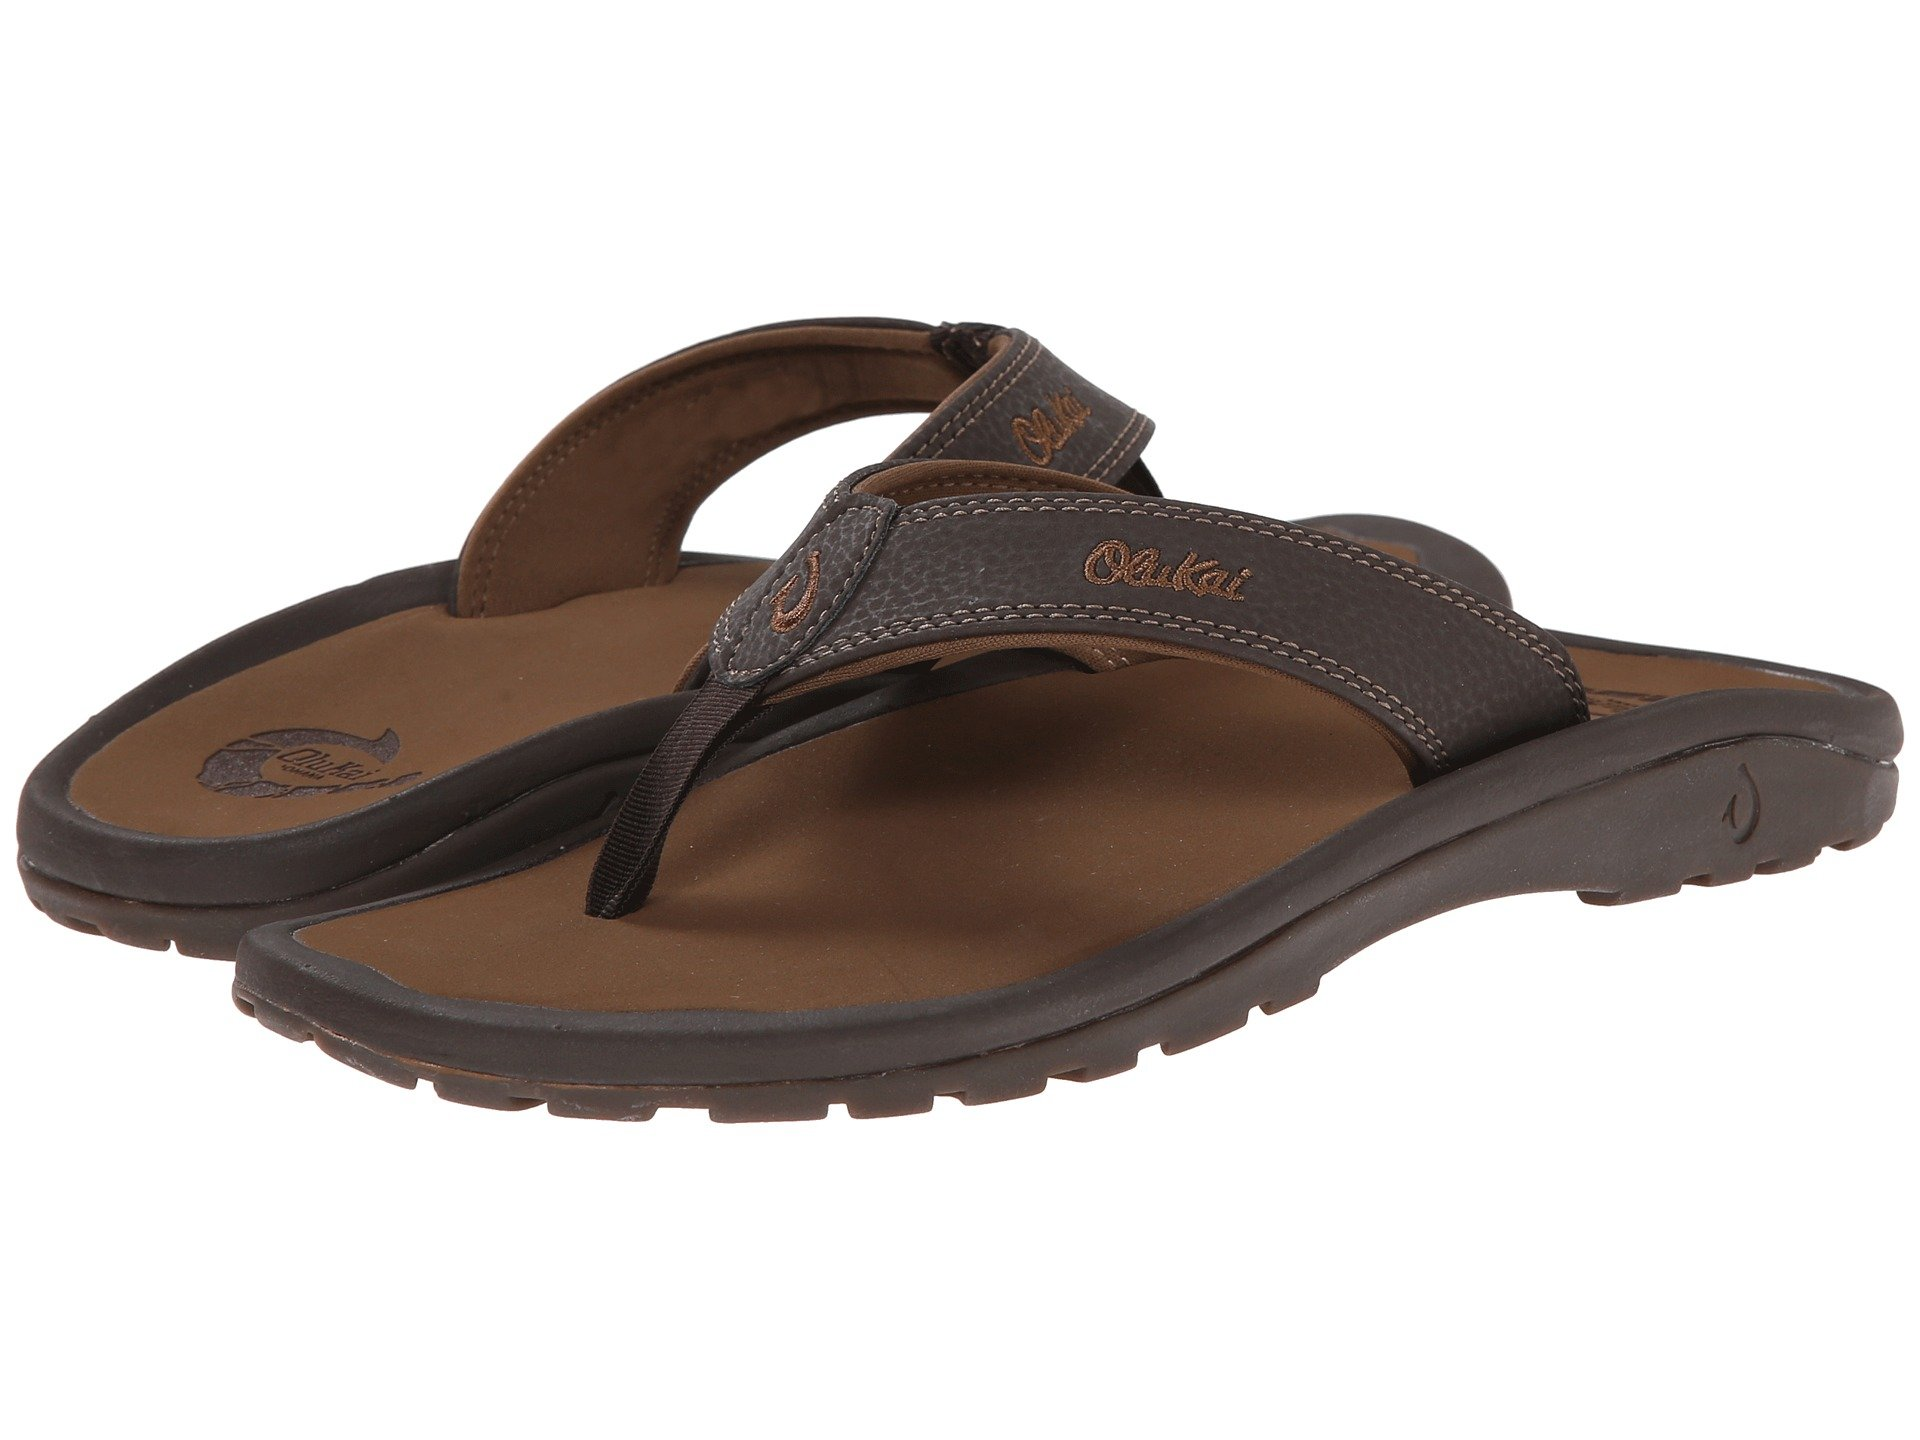 mens shoes sandals NEXLQUX